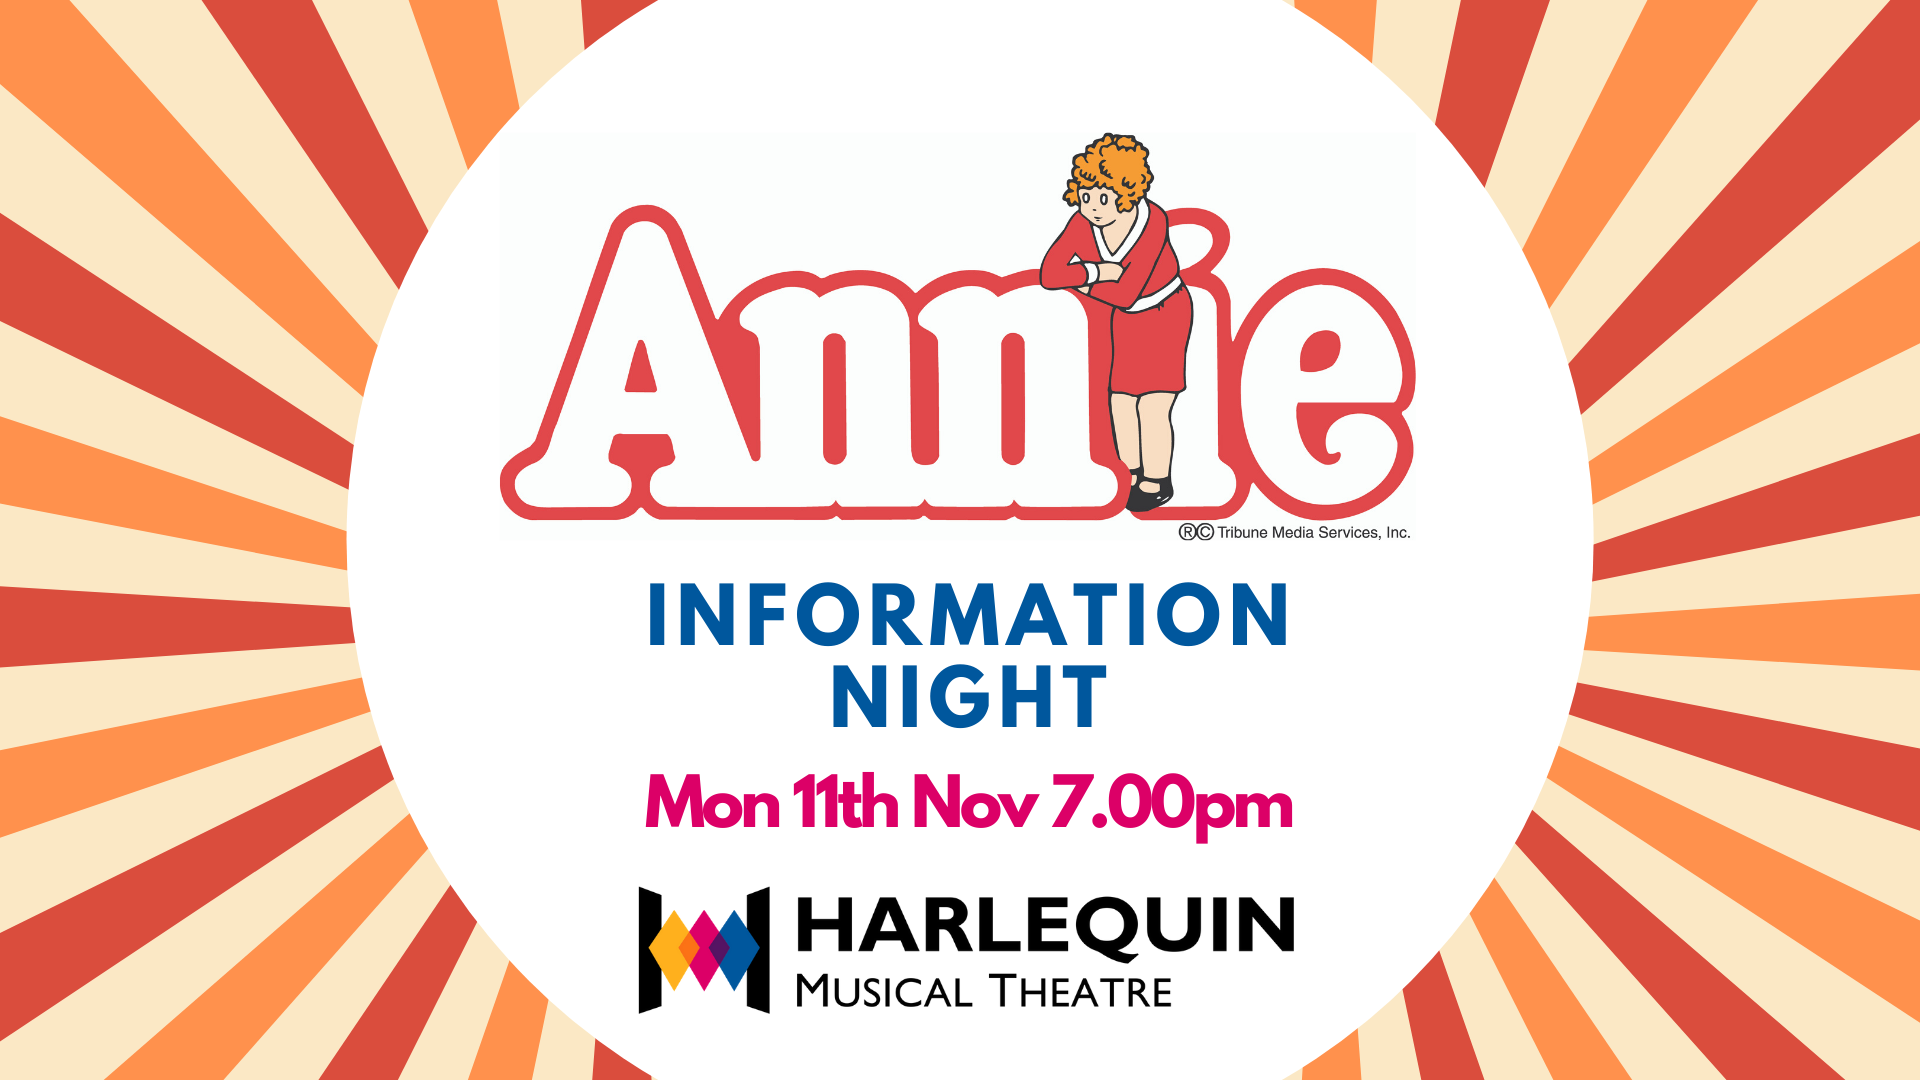 Annie Information Evening